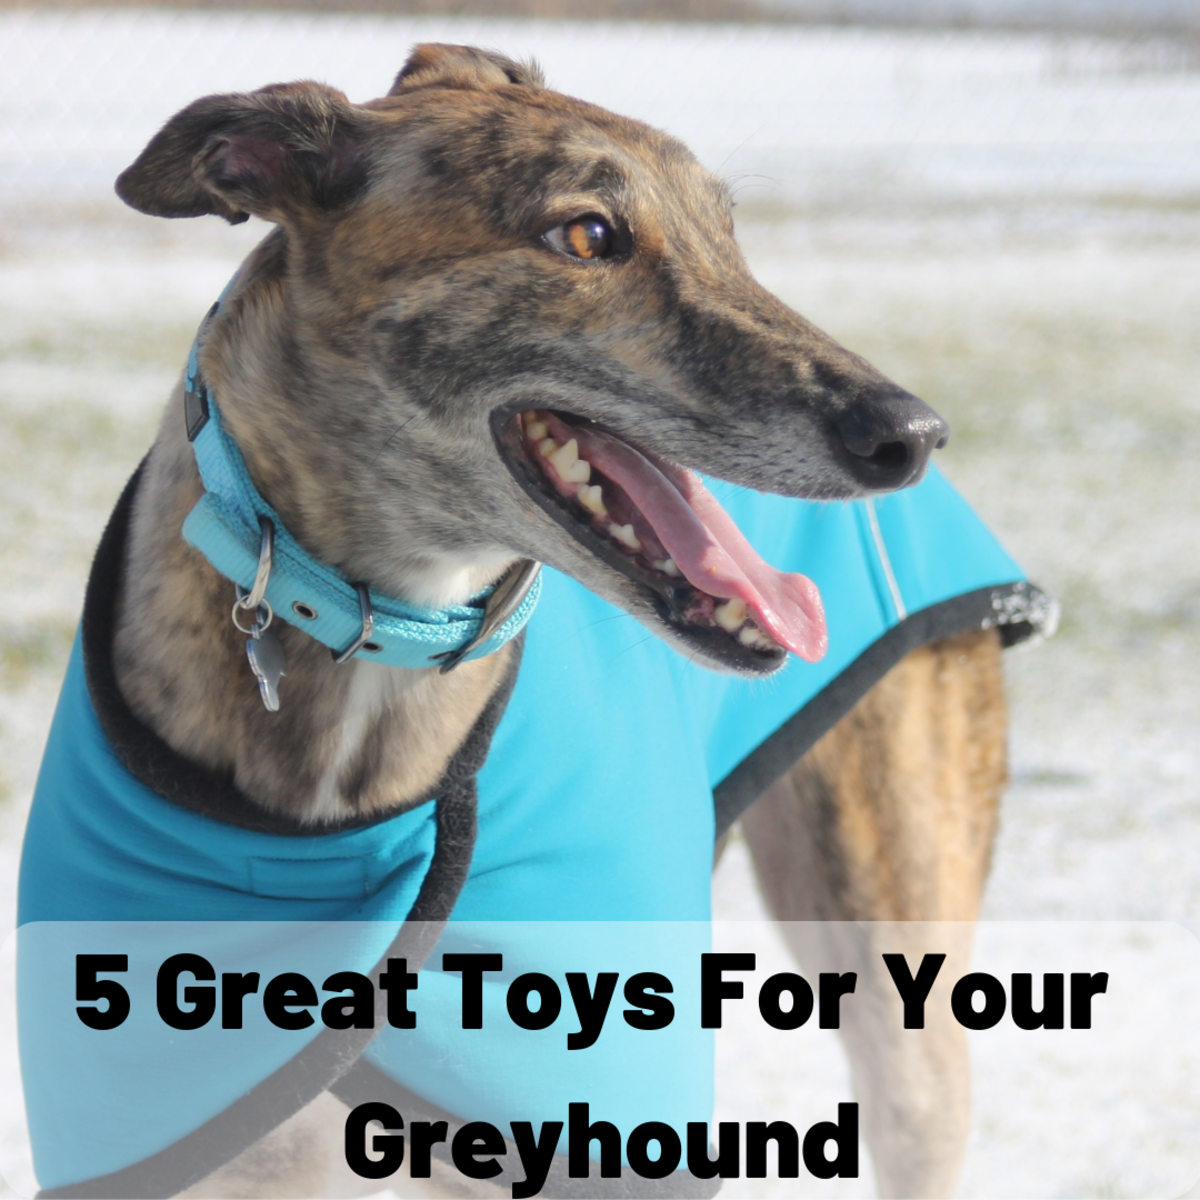 Here are some great toys to get for your greyhound.